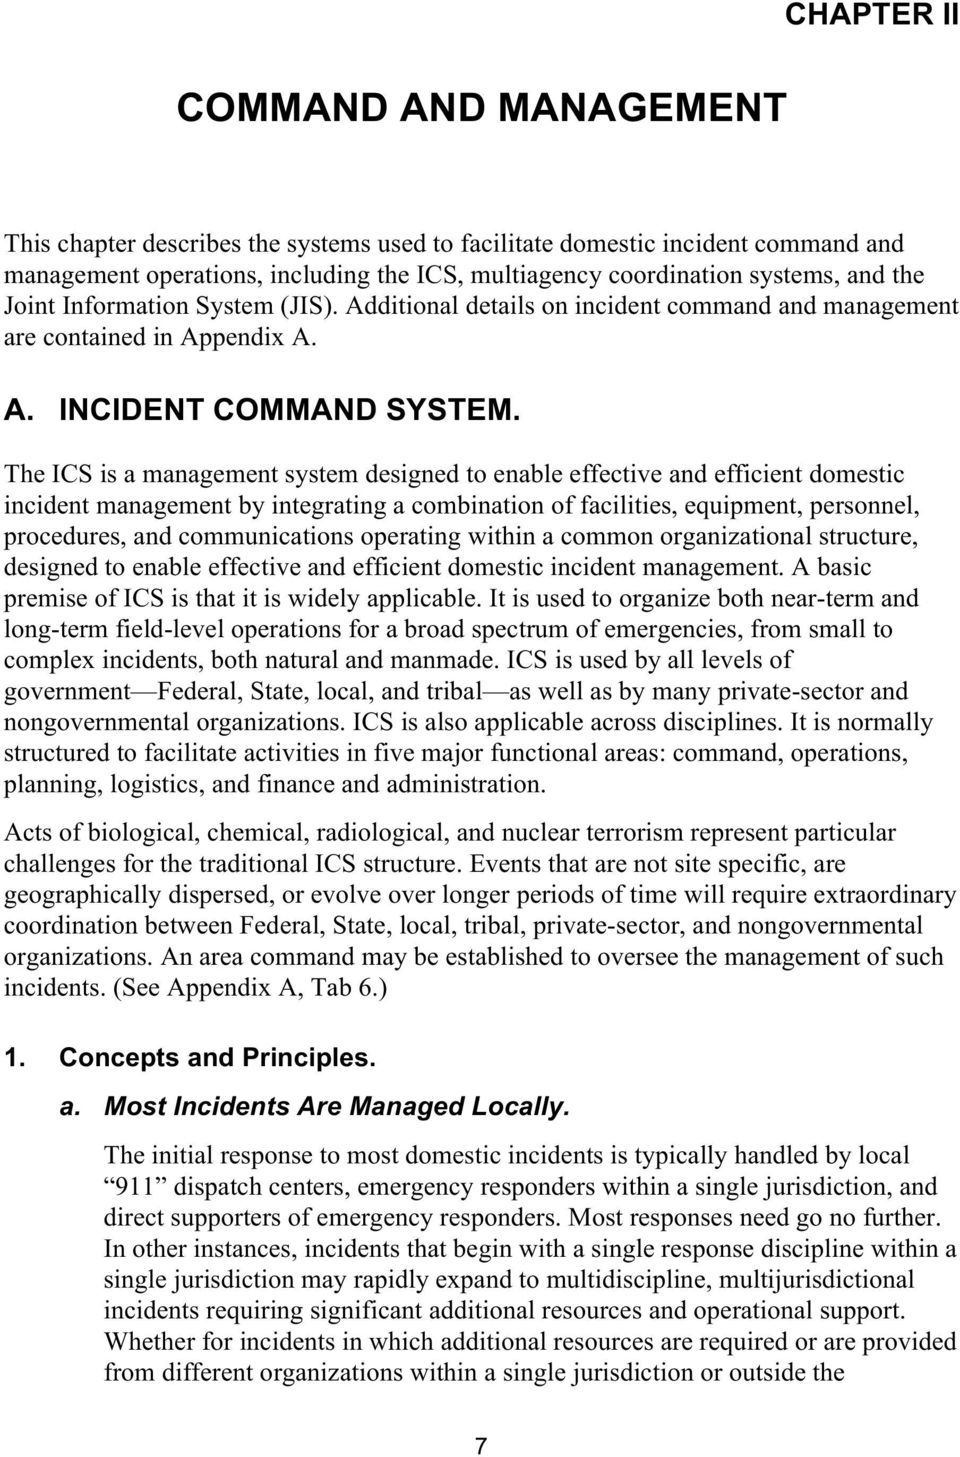 The ICS is a management system designed to enable effective and efficient domestic incident management by integrating a combination of facilities, equipment, personnel, procedures, and communications